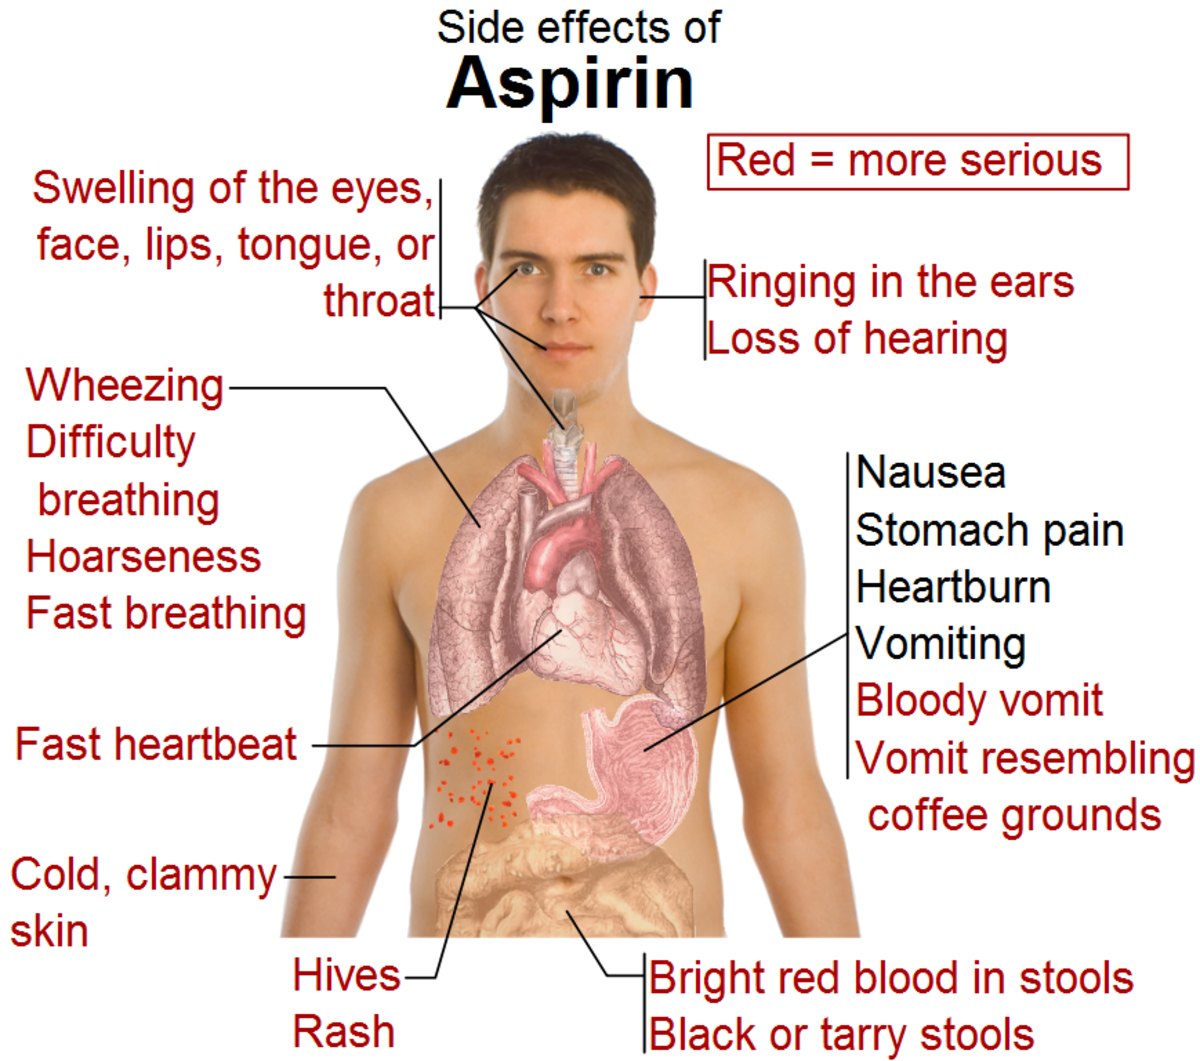 Even the side effects of aspirin are more serious than CBD.